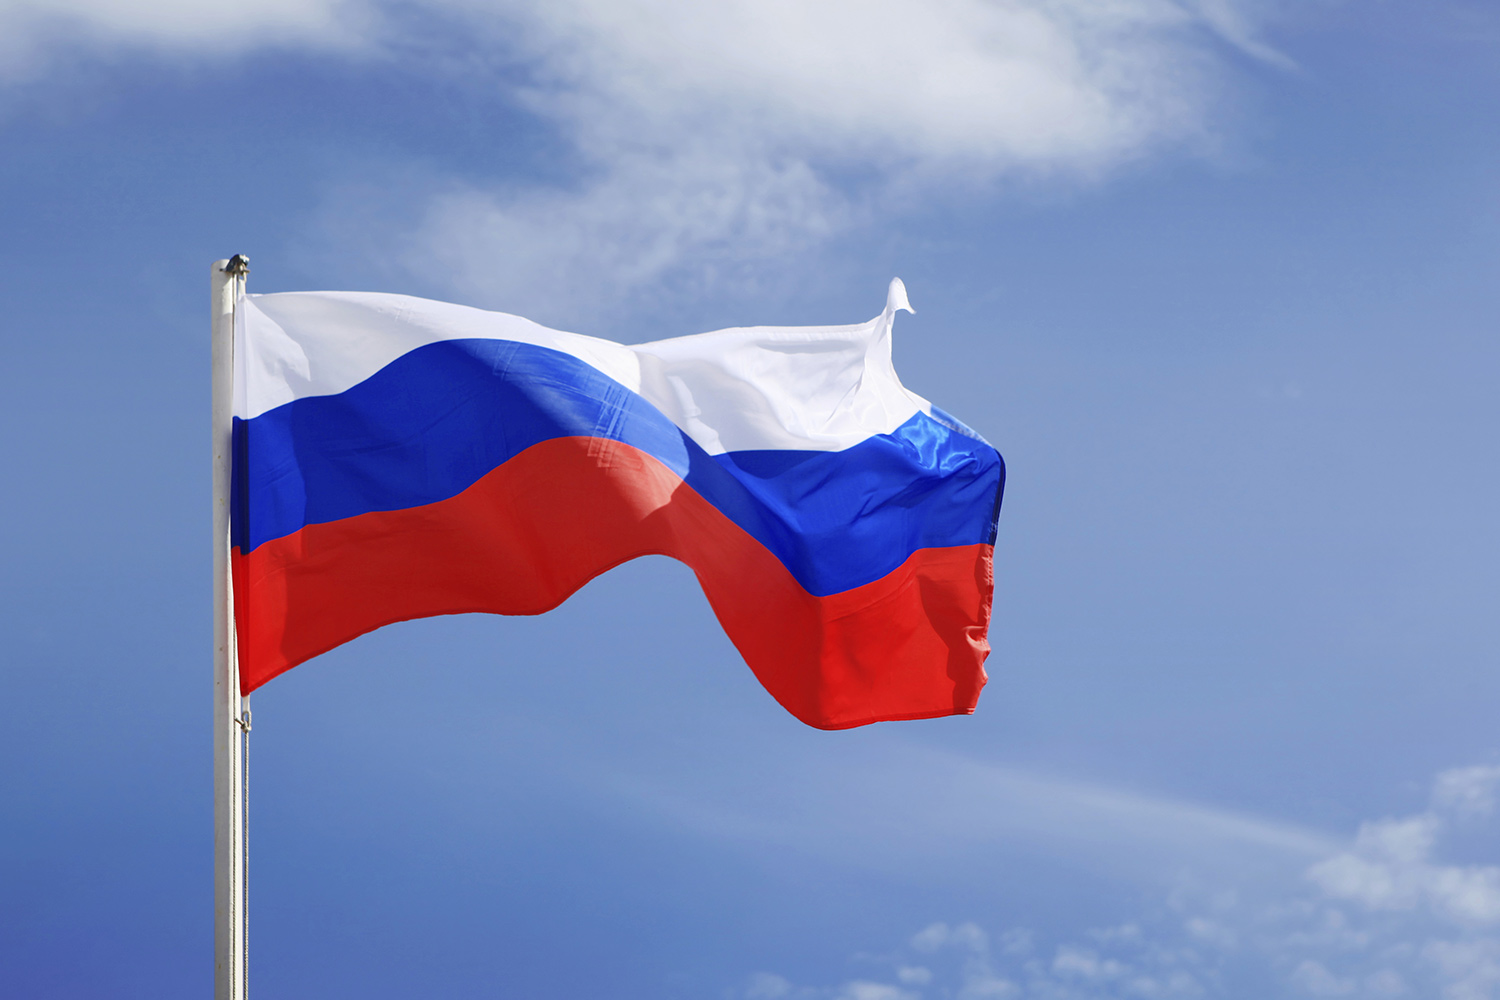 Russia's outbound crisis is proving good news for UK operators